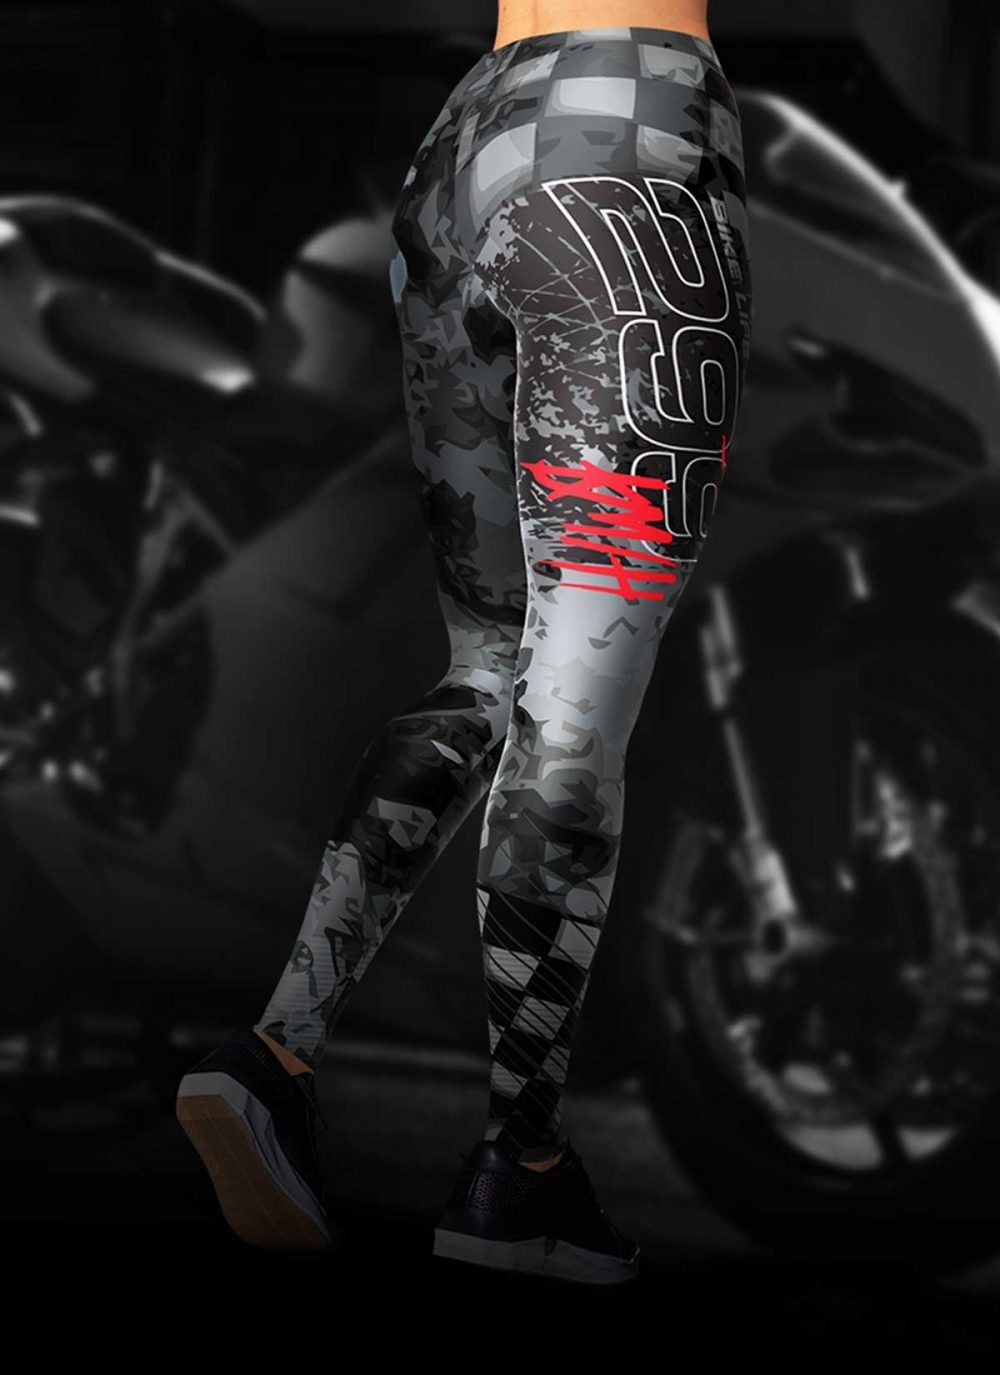 Motorcycle 299 KM/H Leggings